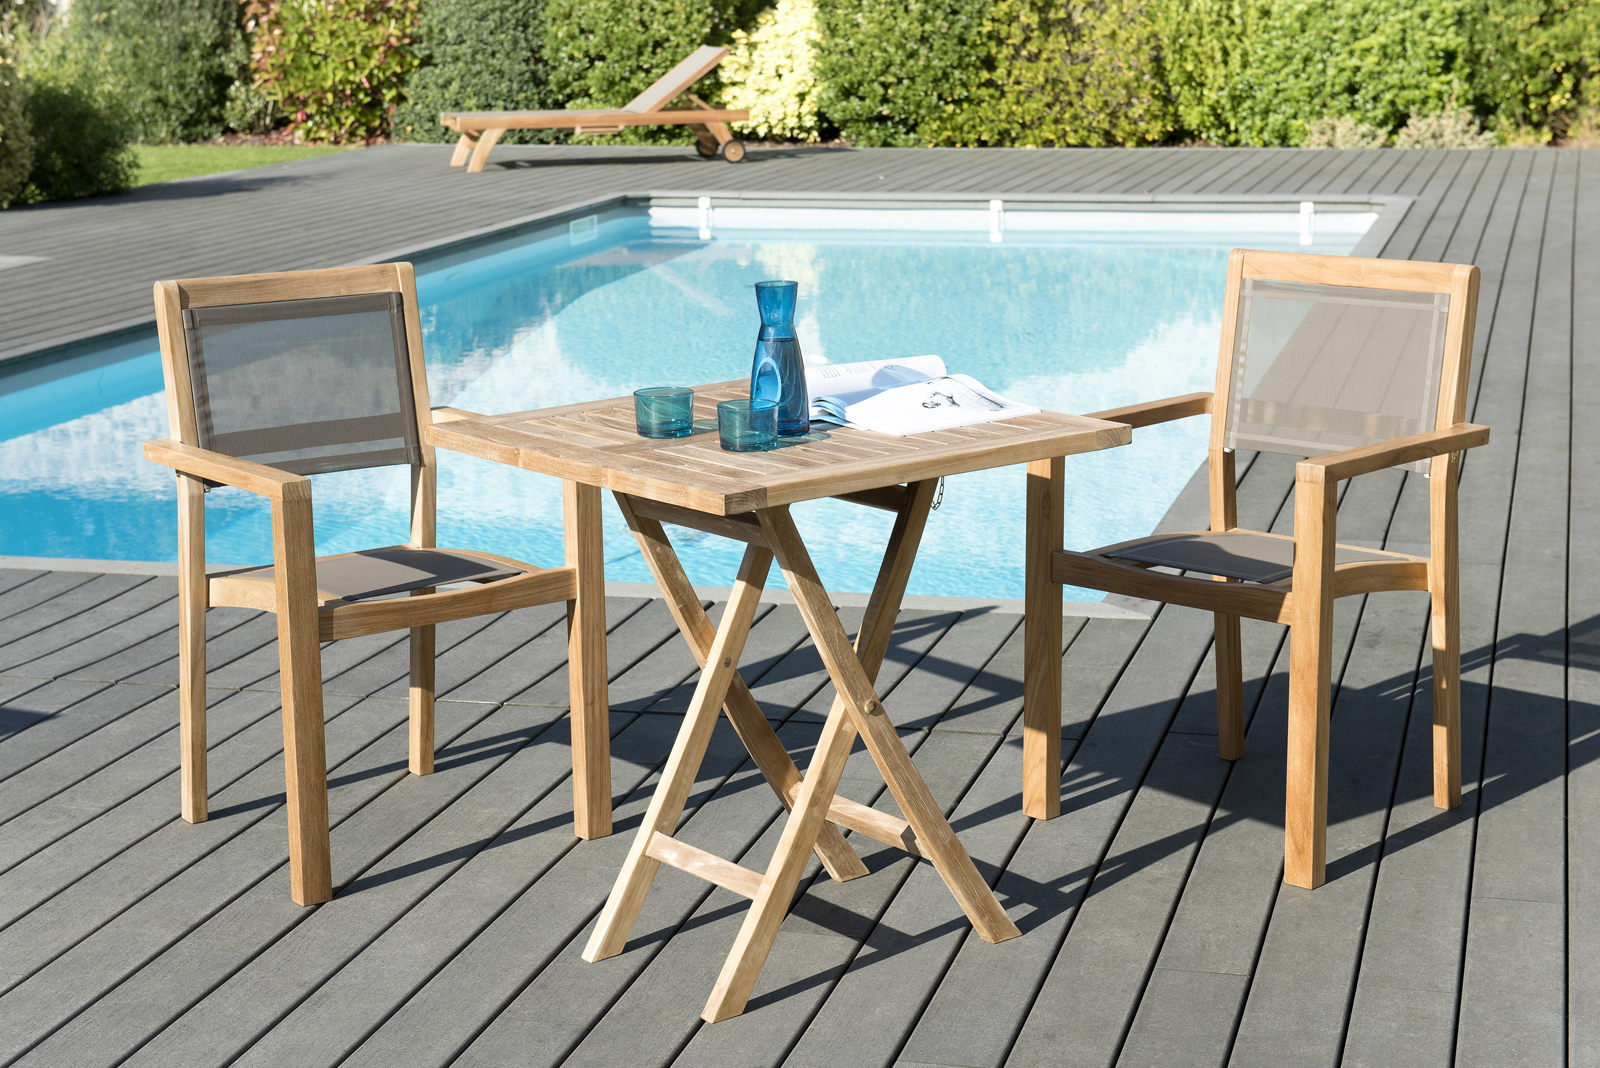 Salon Bas De Jardin En Teck Salon De Jardin Table Teck 70x70cm 2 Fauteuils Empilables Summer